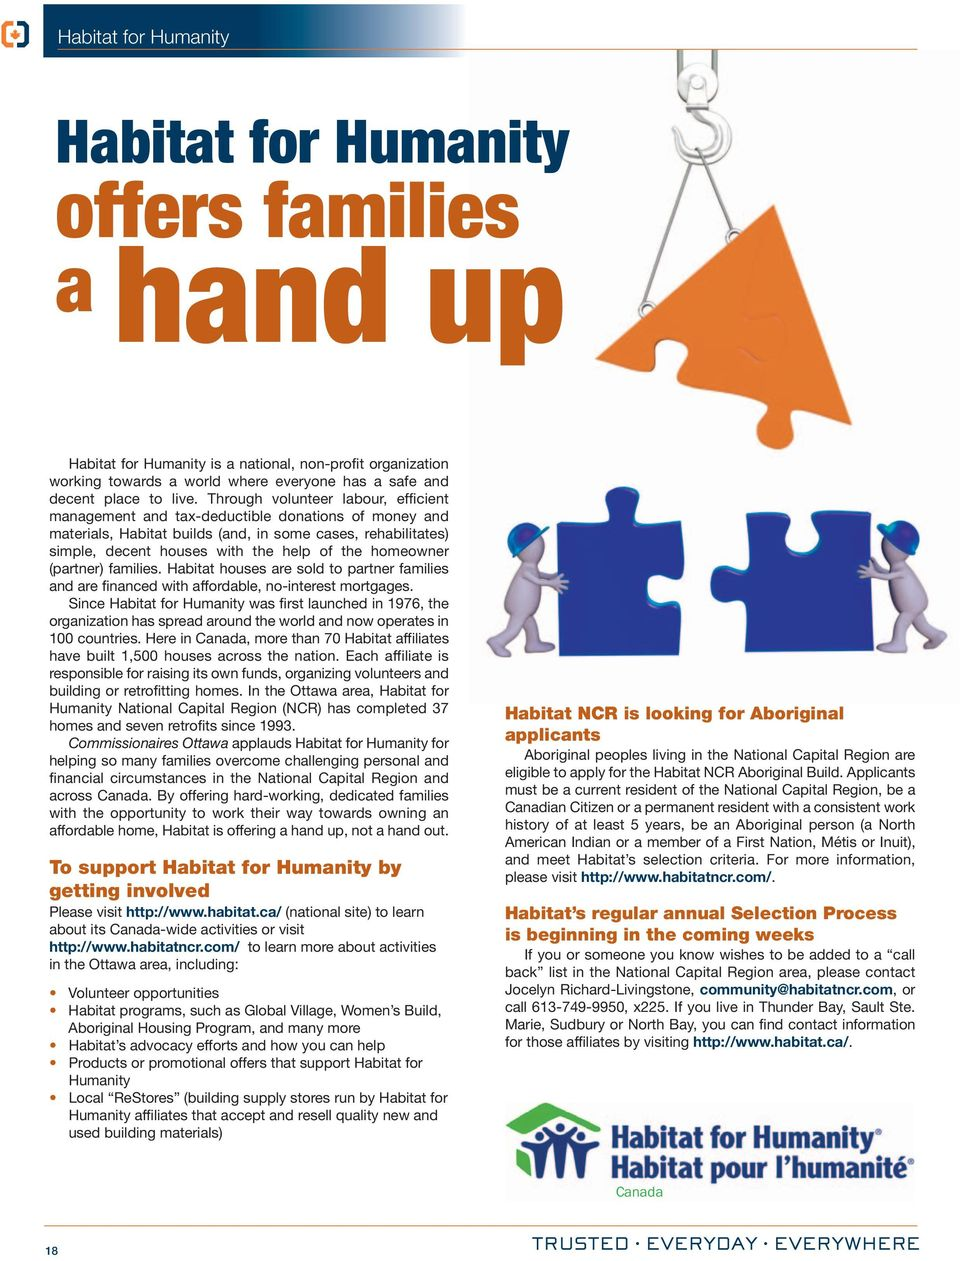 homeowner (partner) families. Habitat houses are sold to partner families and are financed with affordable, no-interest mortgages.